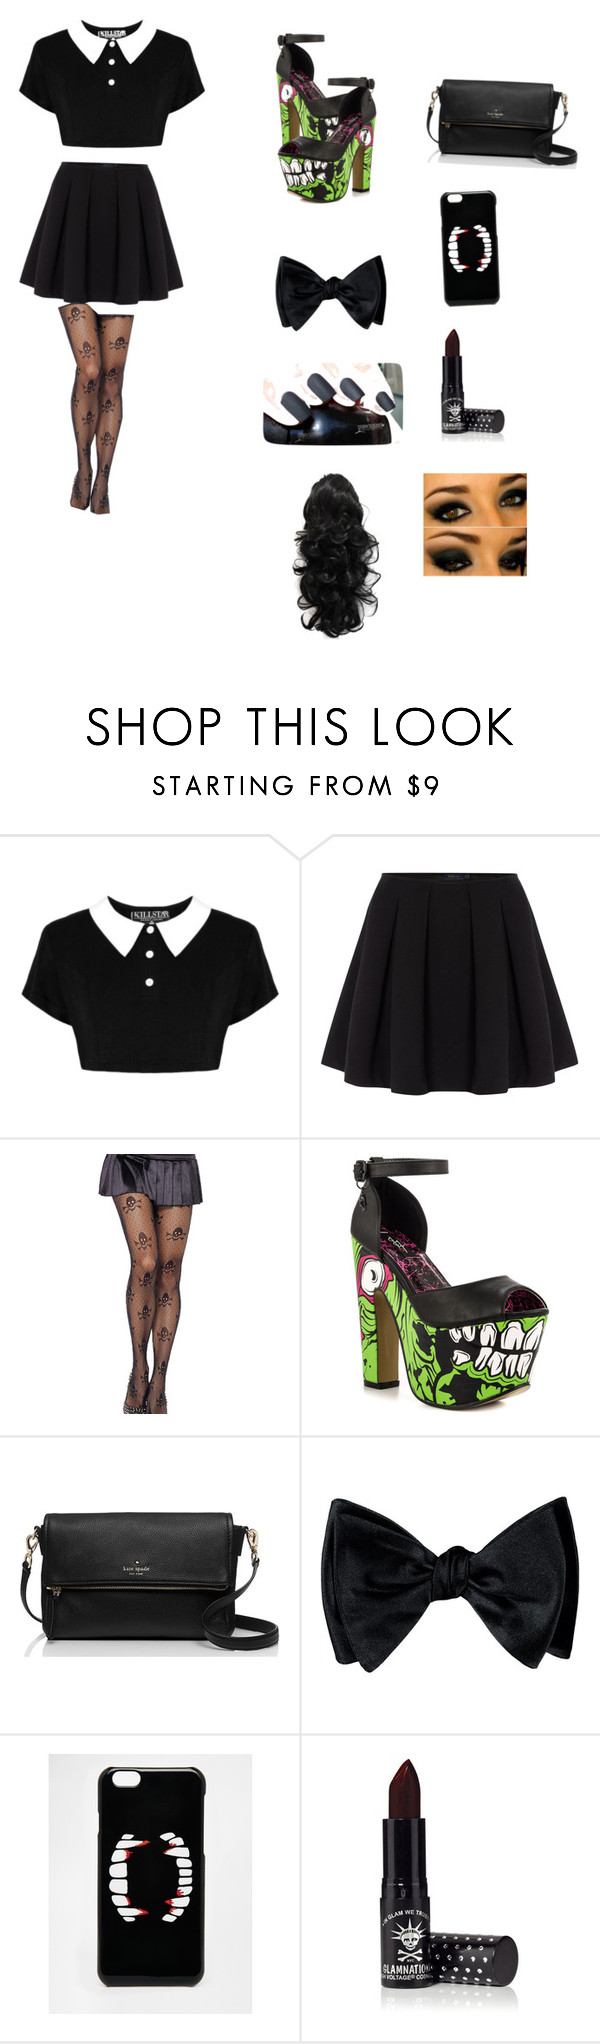 """""""Untitled #63"""" by usmc10069 ❤ liked on Polyvore featuring Polo Ralph Lauren, Iron Fist, Kate Spade, ASOS and Manic Panic"""